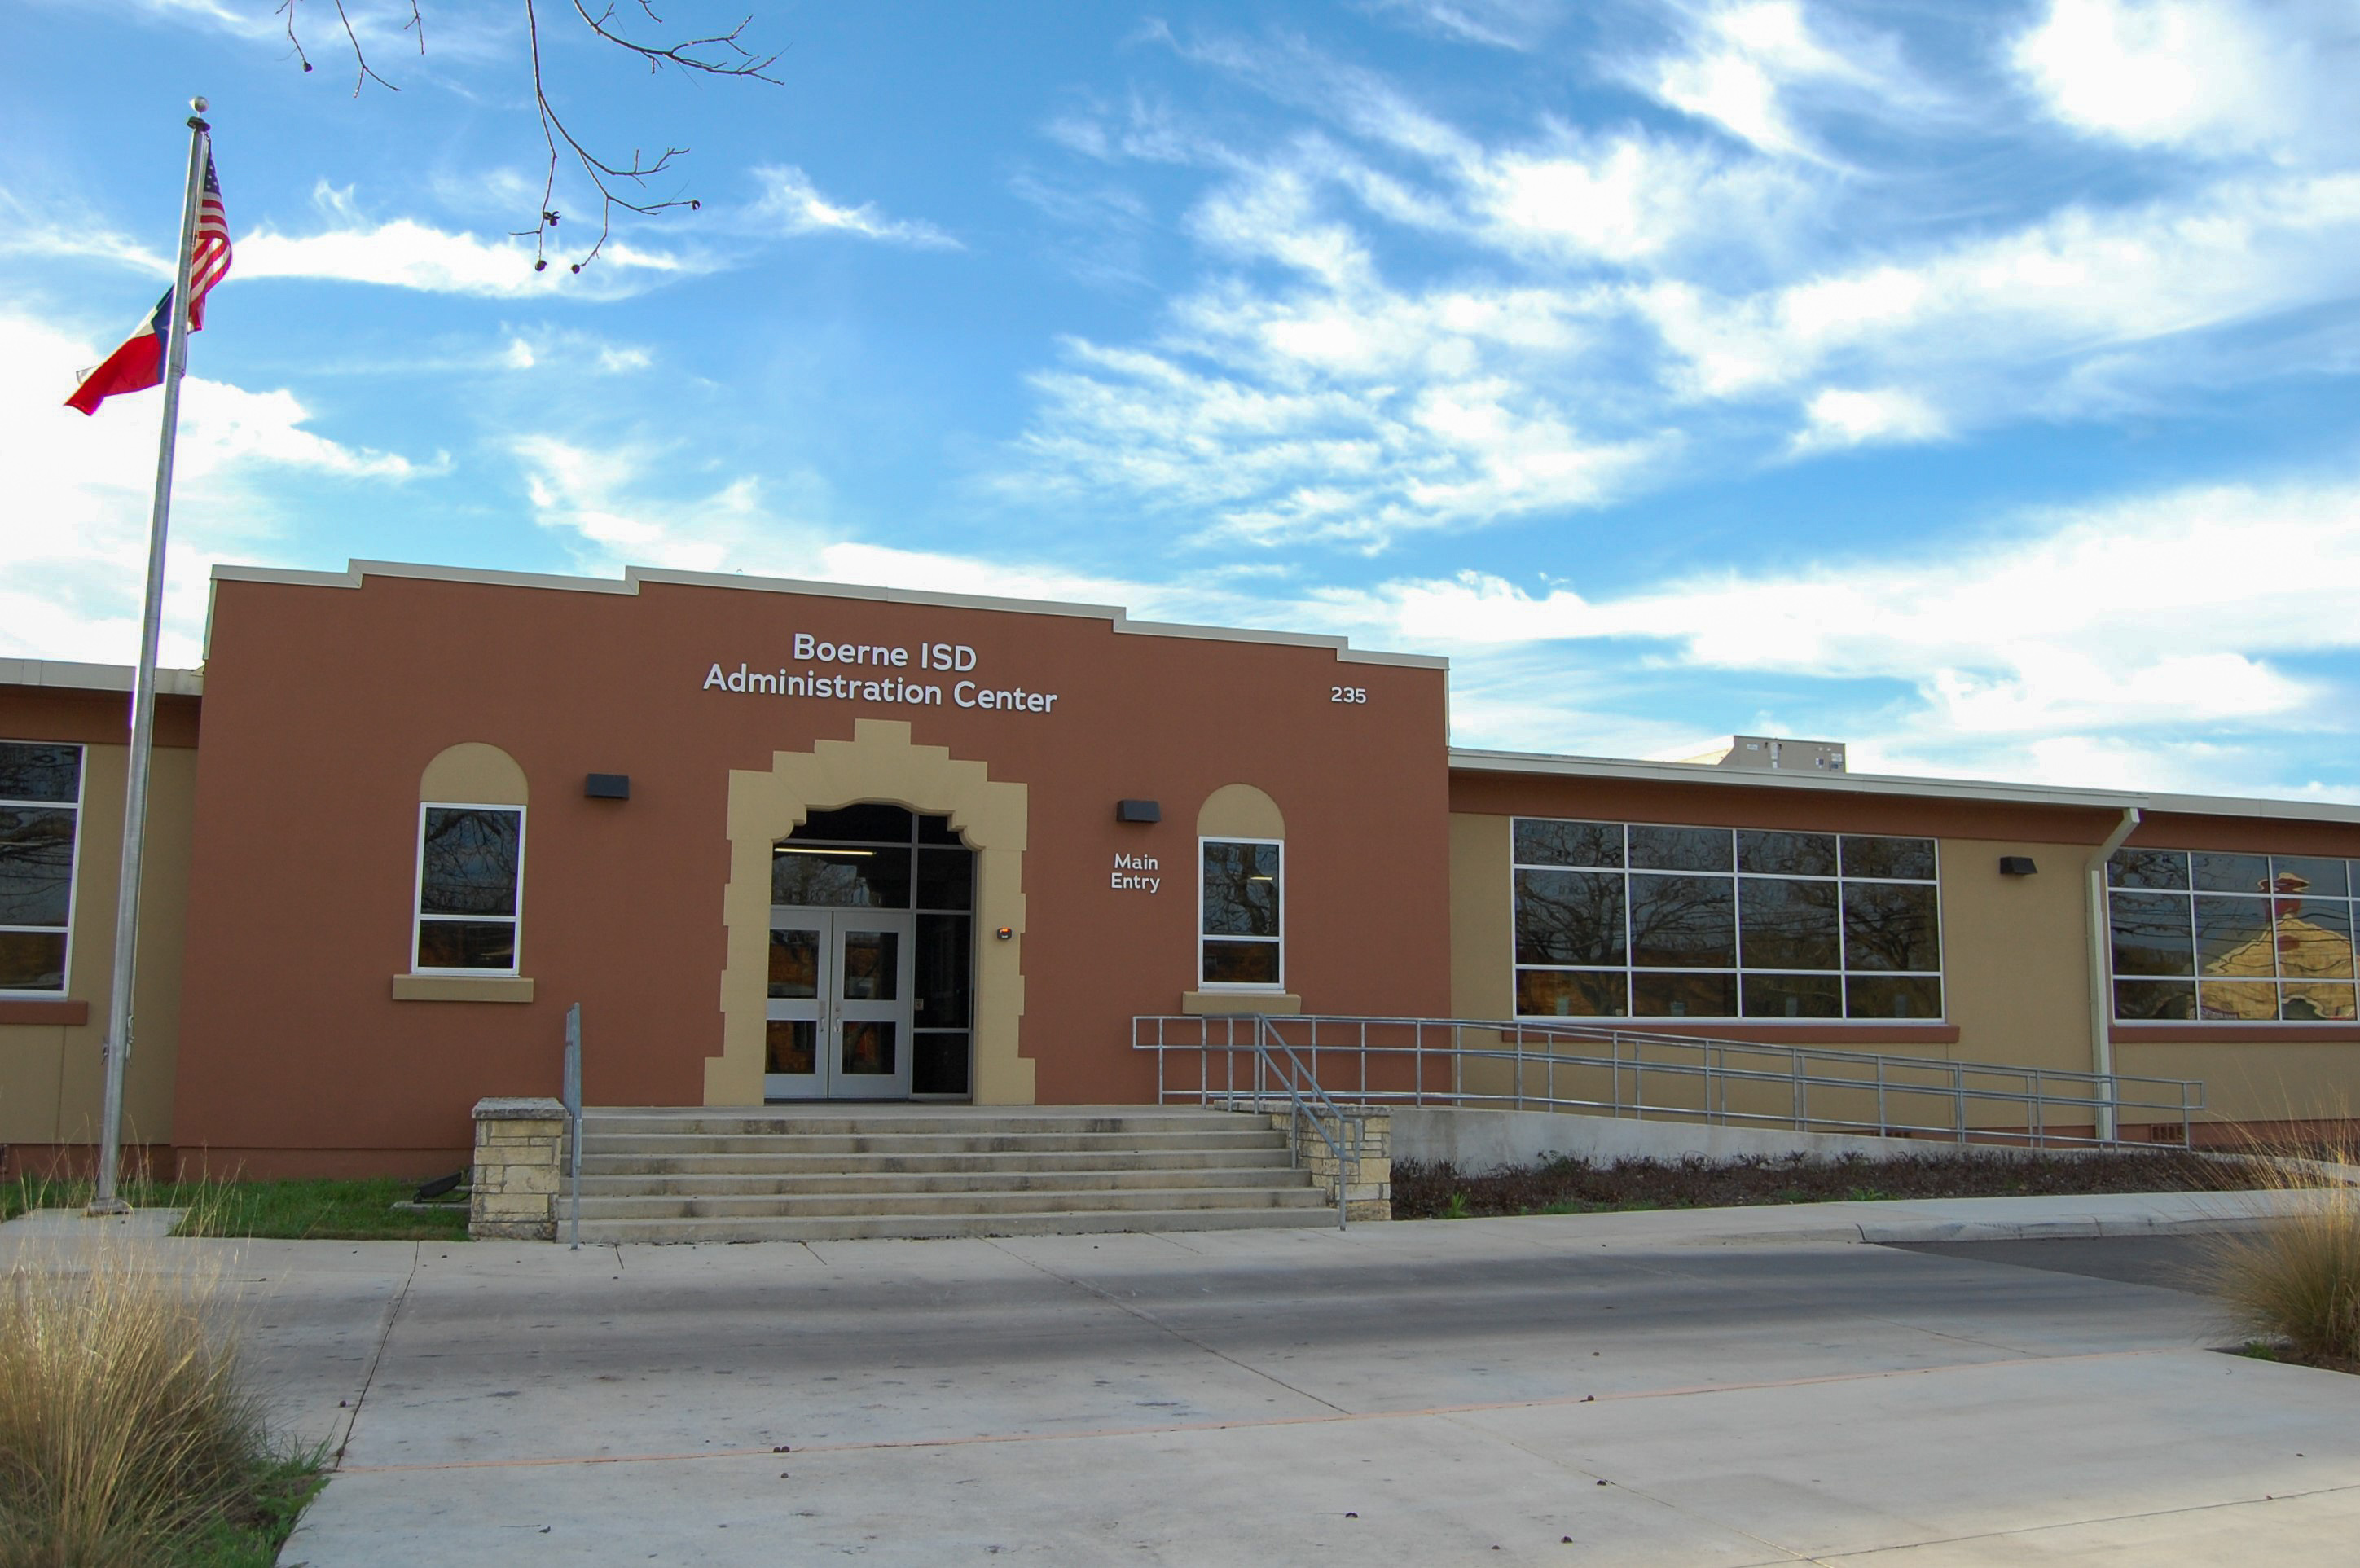 Boerne ISD Fabra Administrative Building Conversion